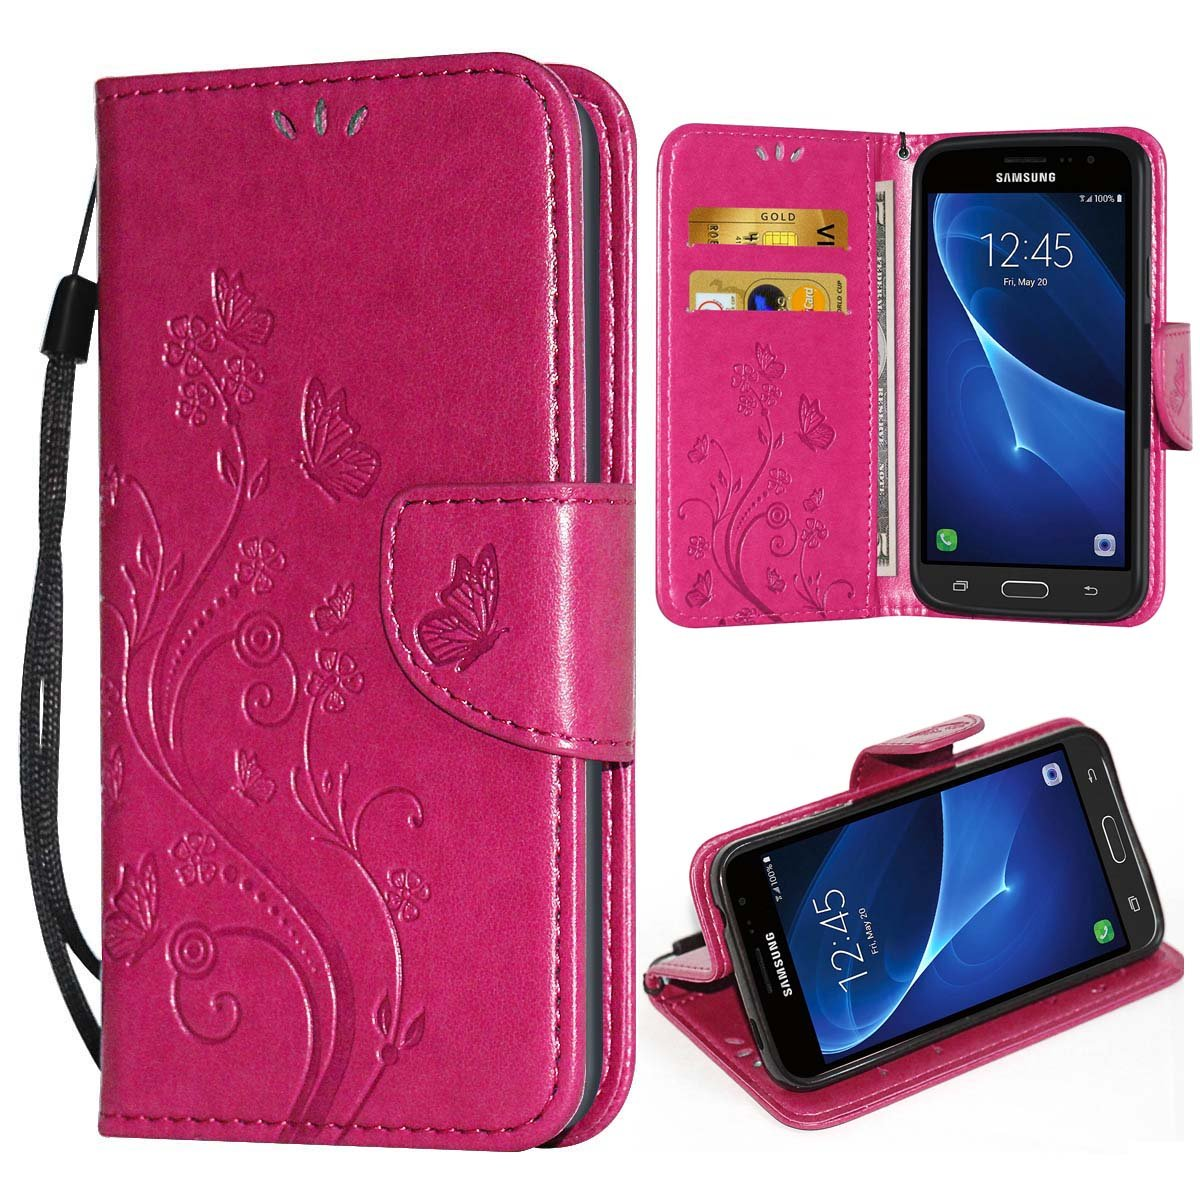 i-Dawn Premium Wallet Leather Flip Protective Case with Wristlet Lanyard and Kickstand for Samsung Galaxy J3(2016) & Galaxy J3(2015) Rose